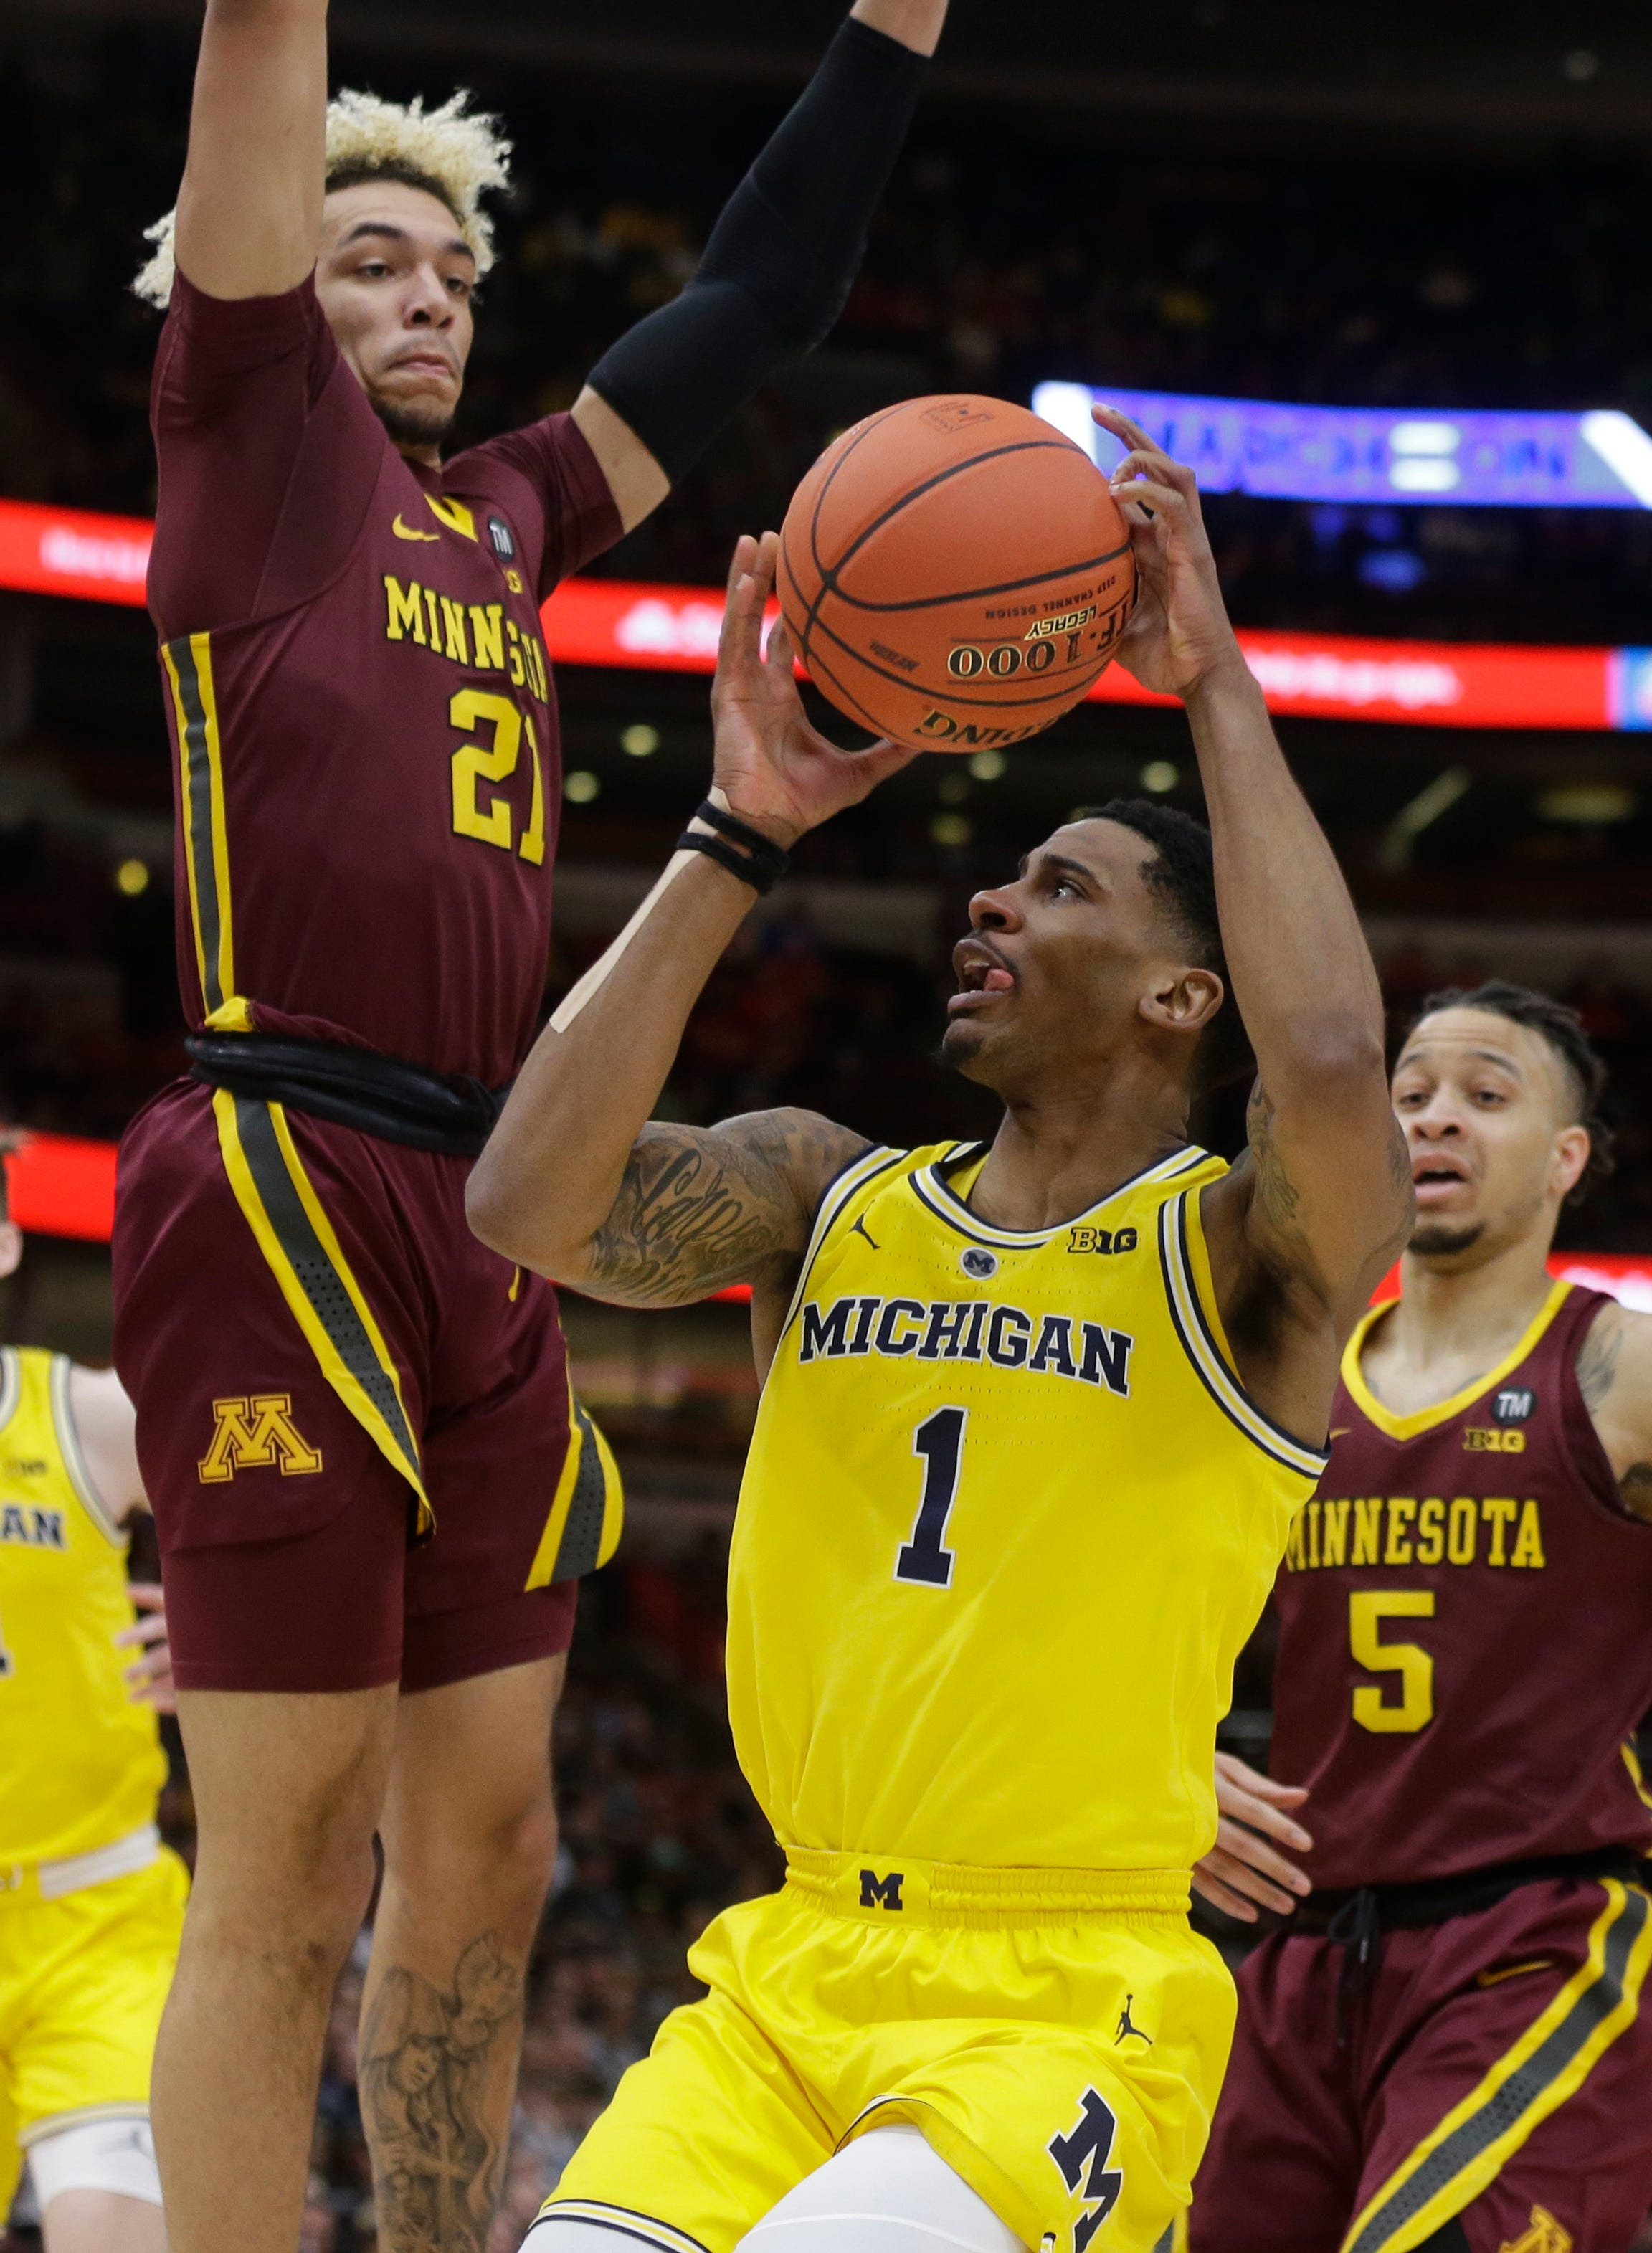 Michigan's Charles Matthews (1) drives against Minnesota's Jarvis Omersa (21) during the first half of an NCAA college basketball game in the semifinals of the Big Ten Conference tournament, Saturday, March 16, 2019, in Chicago.